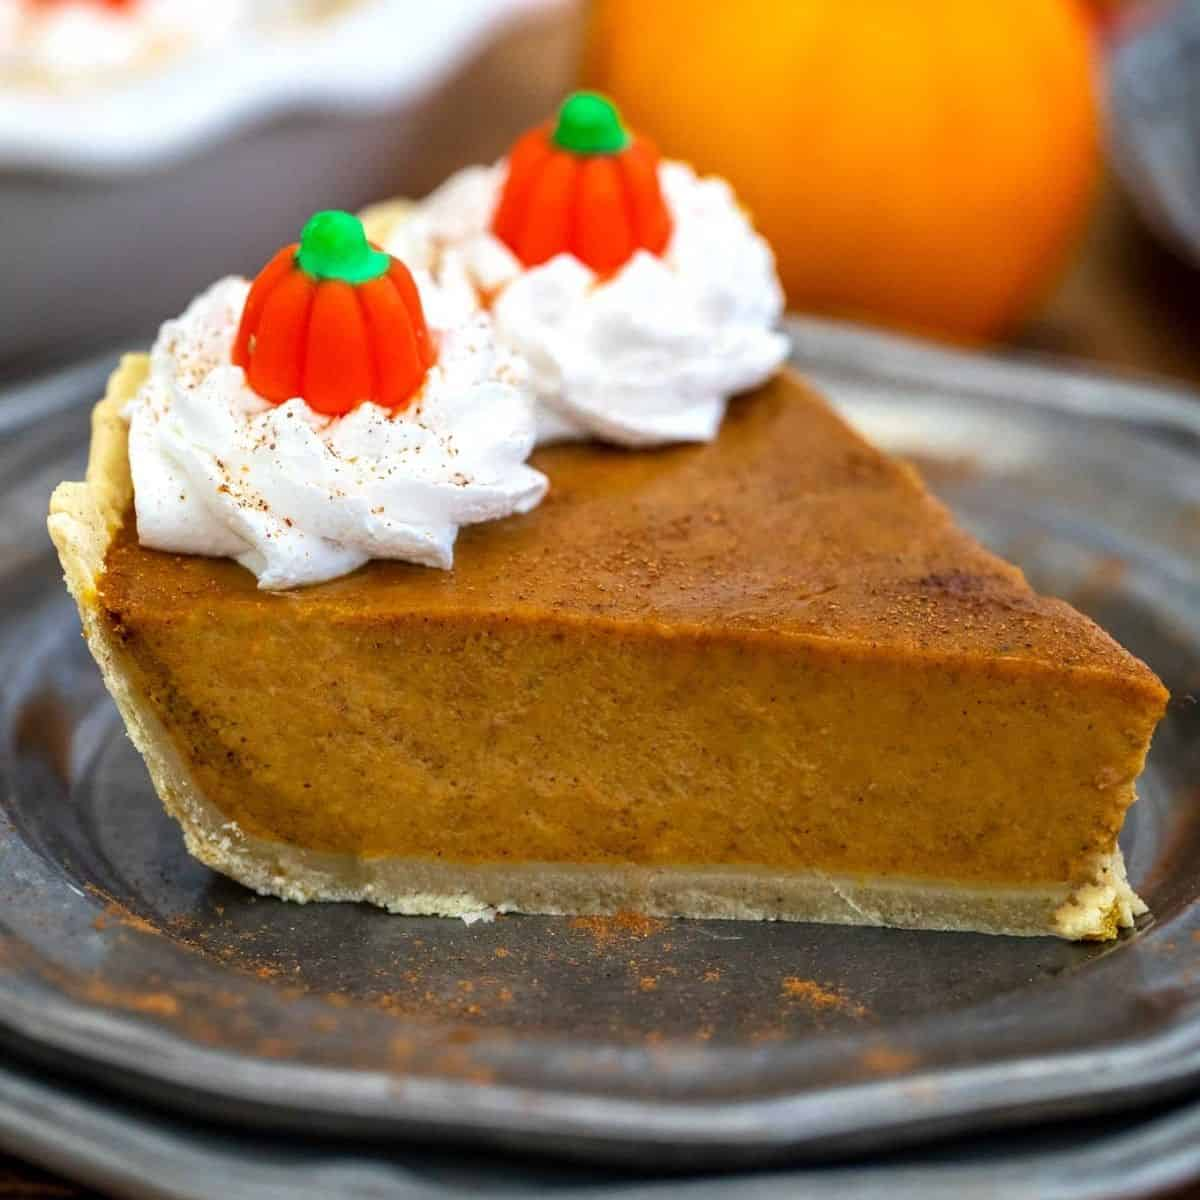 slice of pumpkin pie with whipped cream and little candy pumpkins on top.